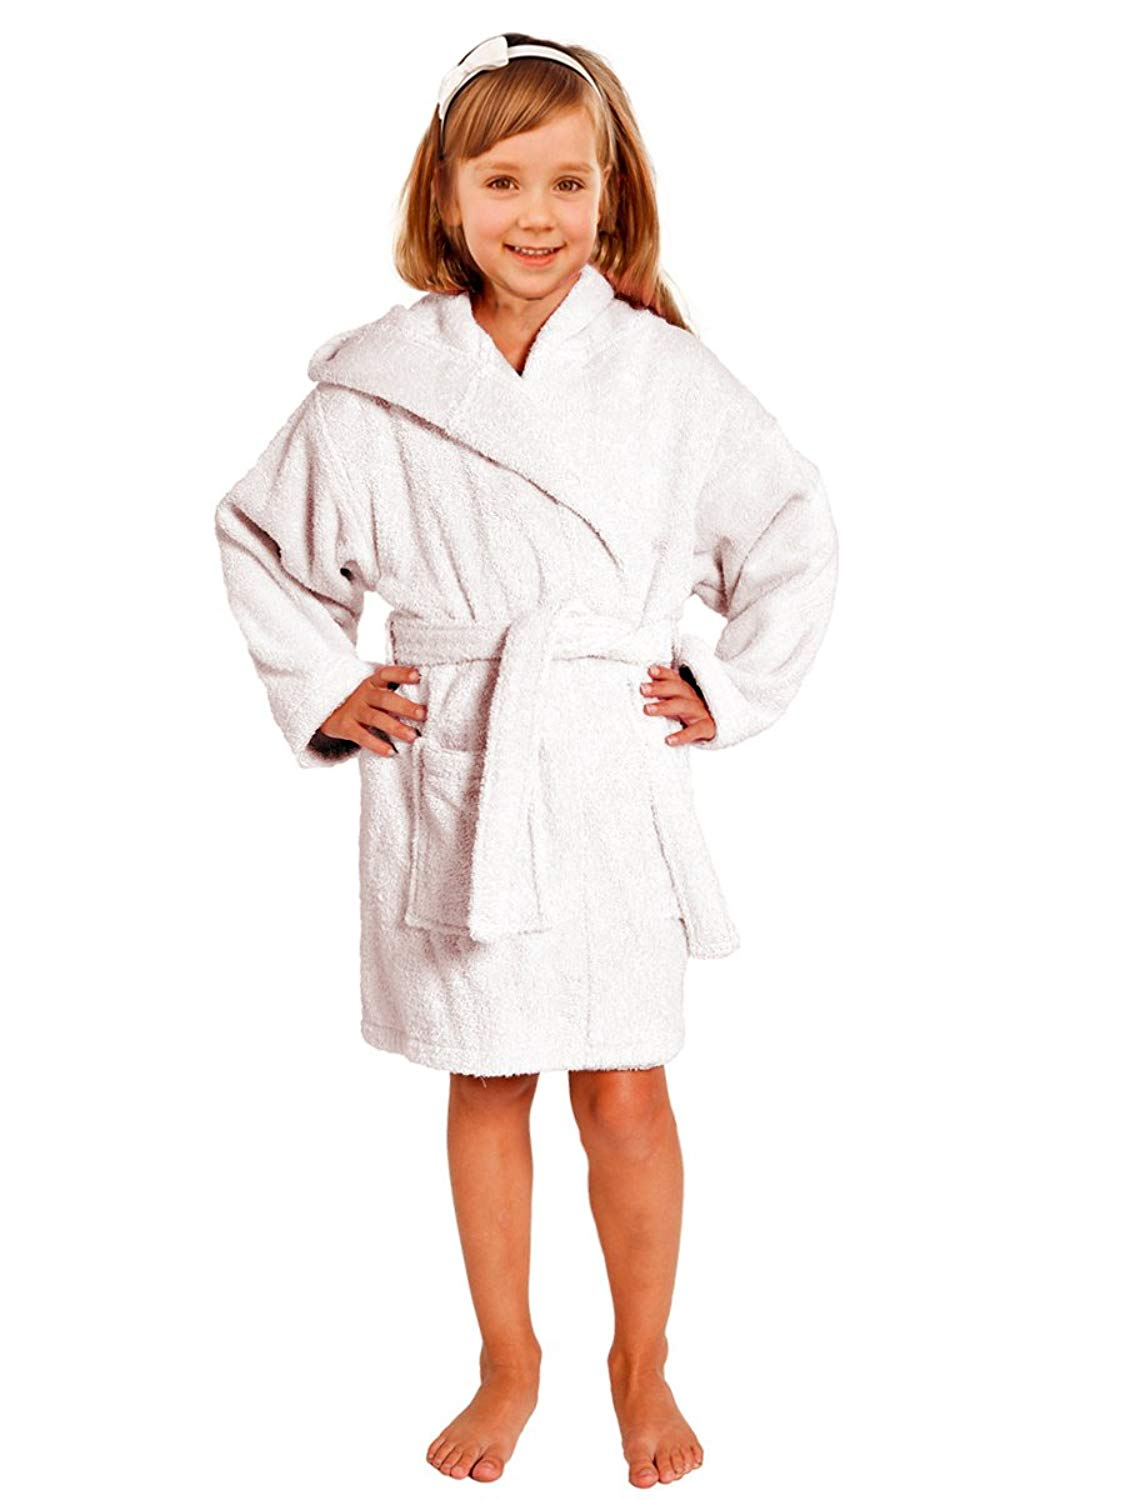 ecc55c92a8 Get Quotations · Terry Towel Bathrobe 100% Cotton White Kids Hooded Robe